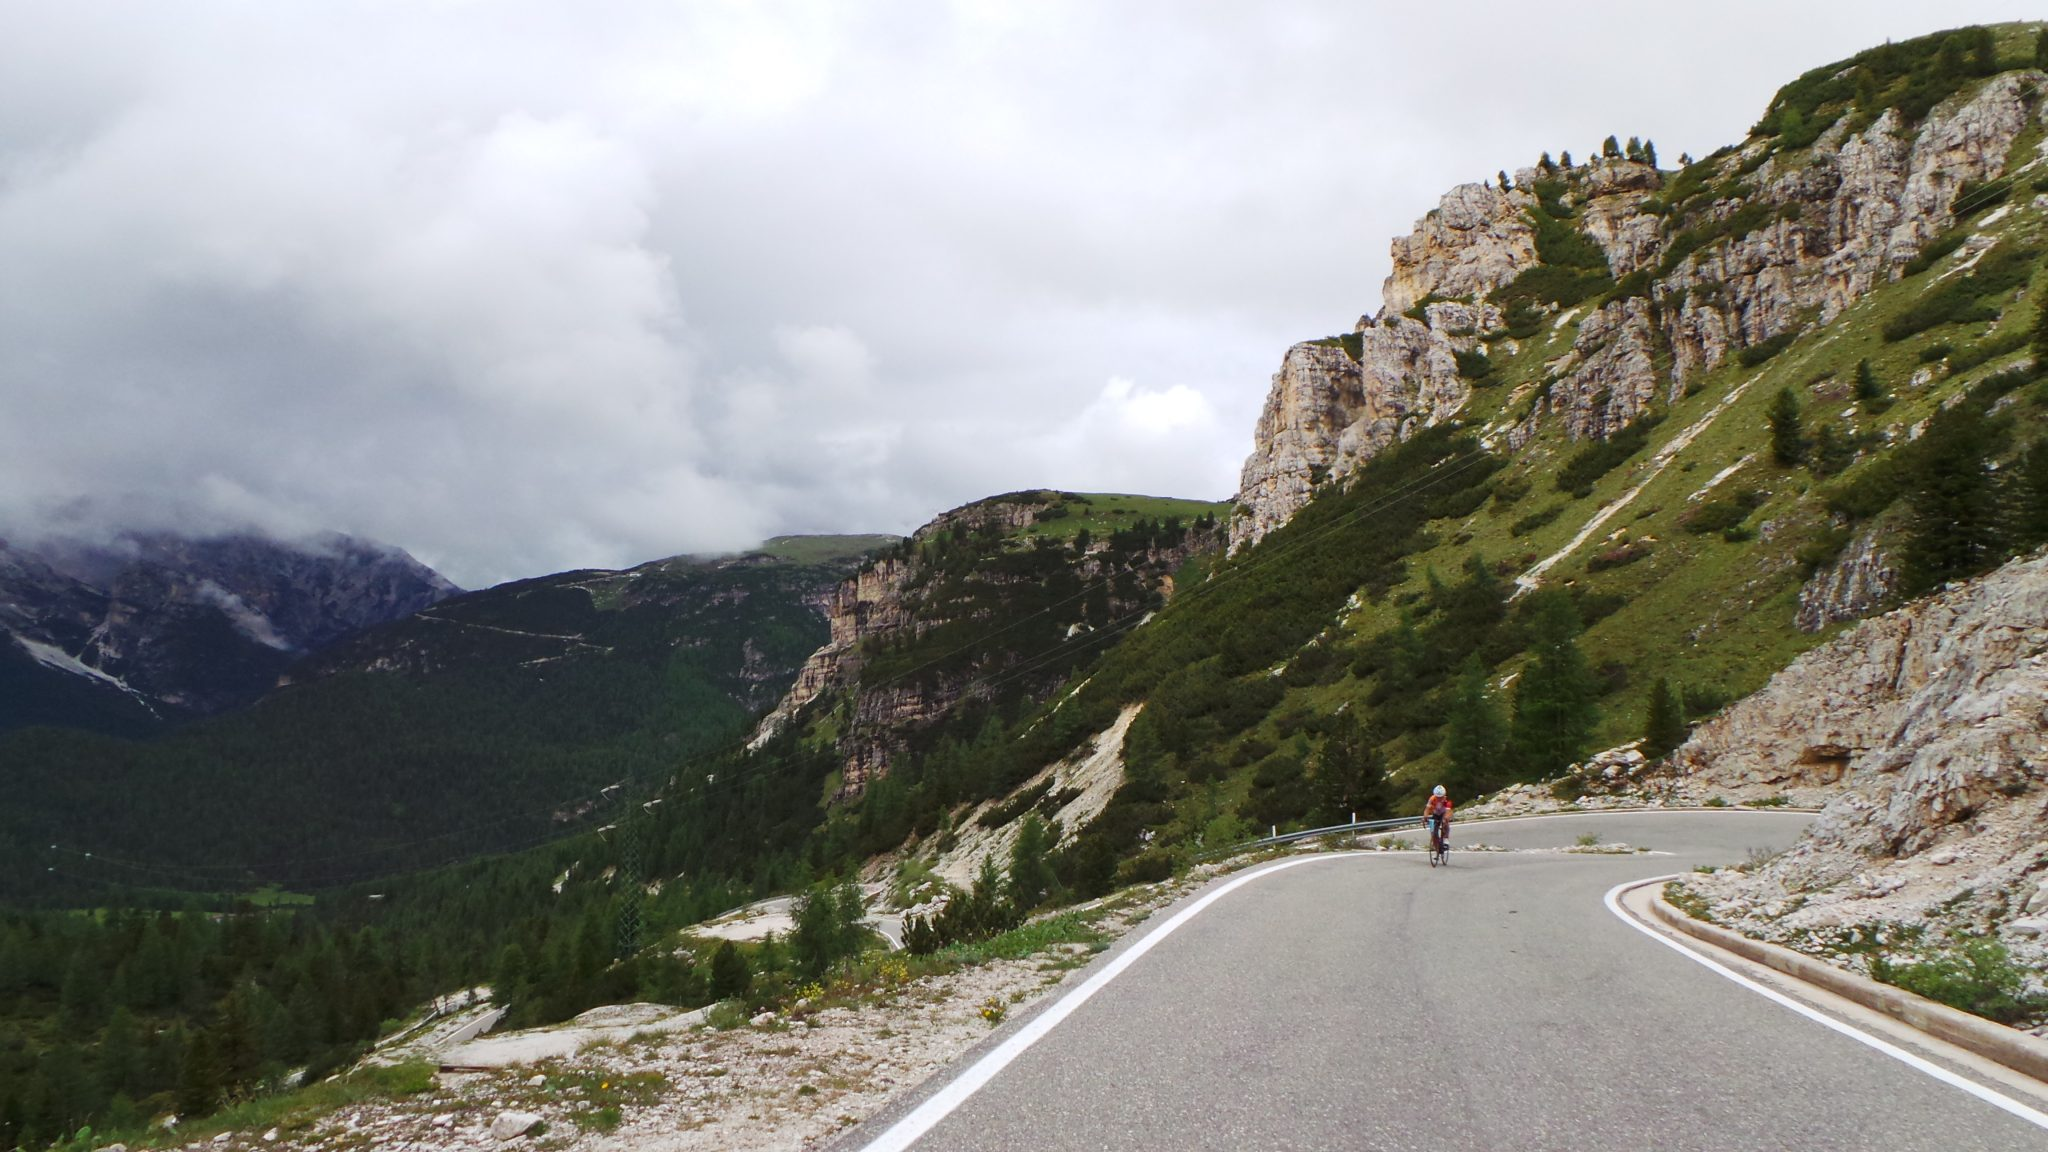 The very tough part of Tre Cime di Lavaredo